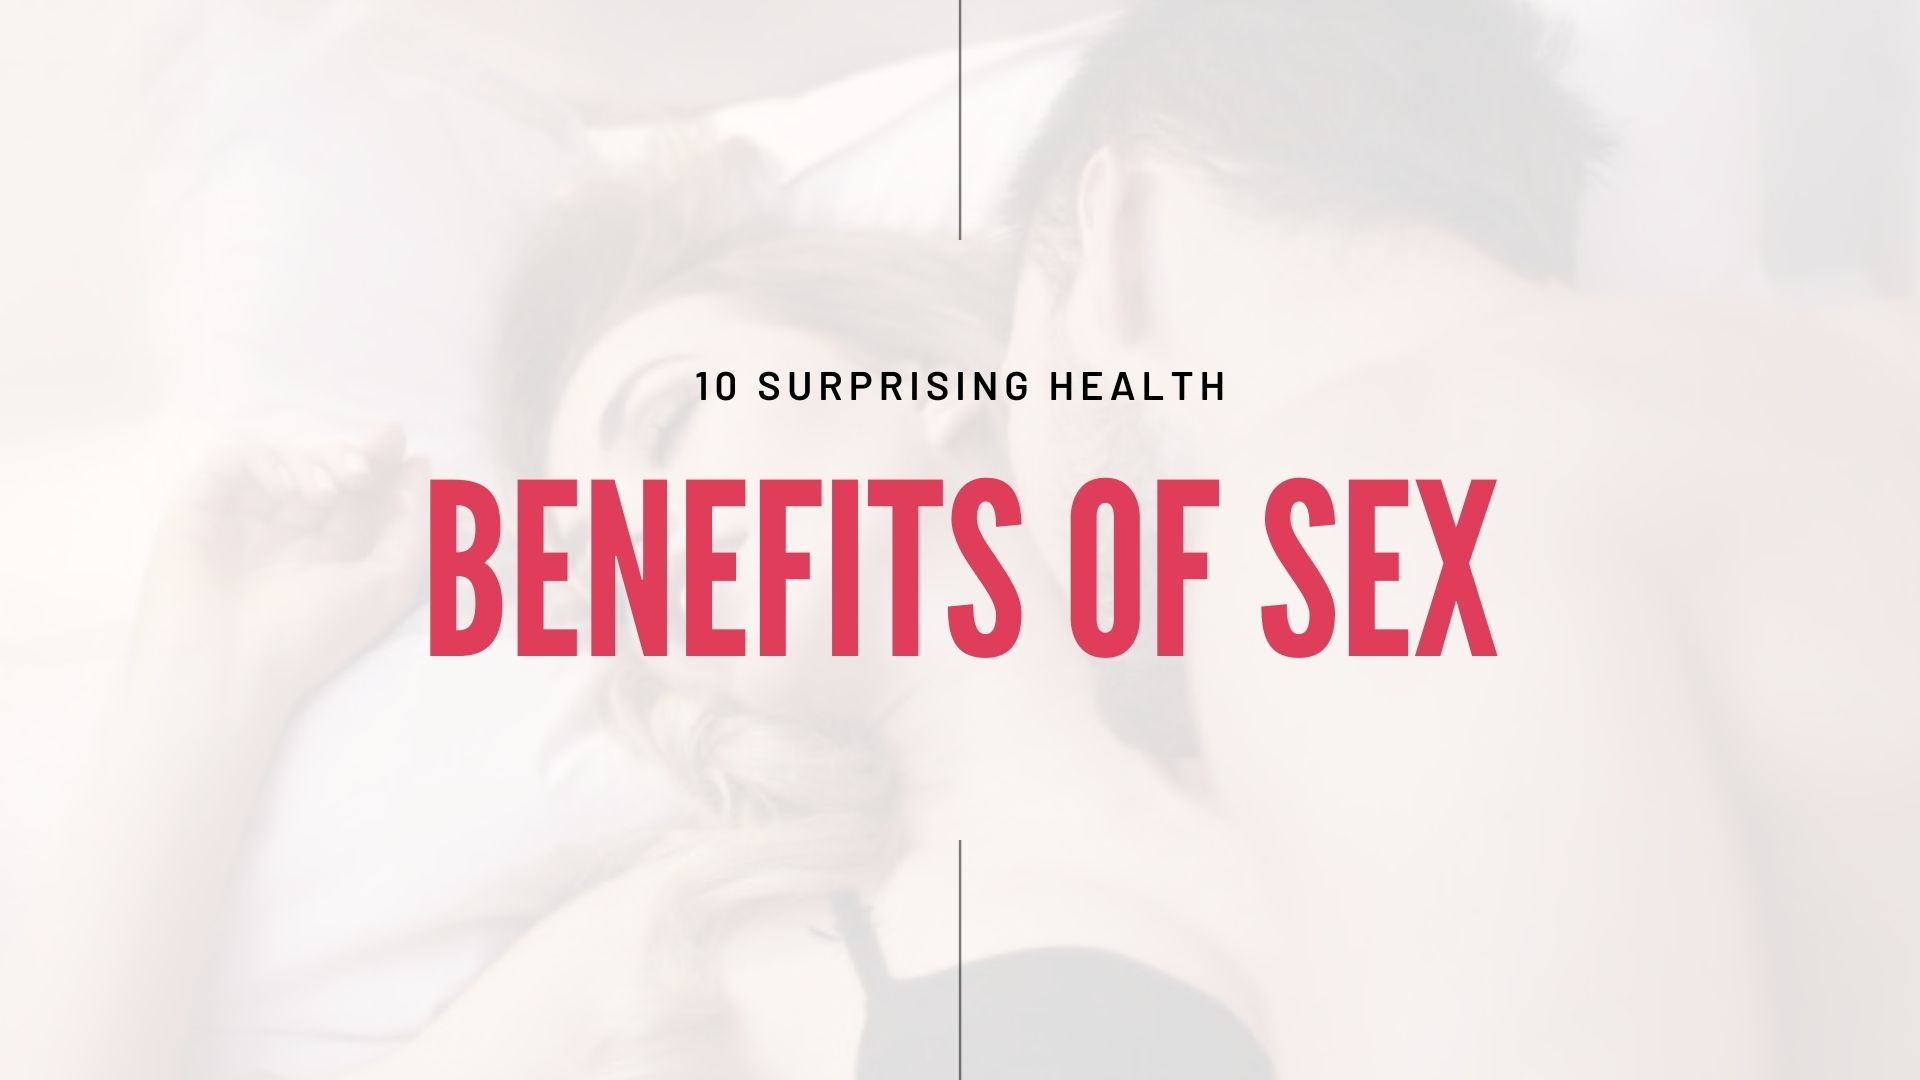 10 Surprising Health Benefits of Sex